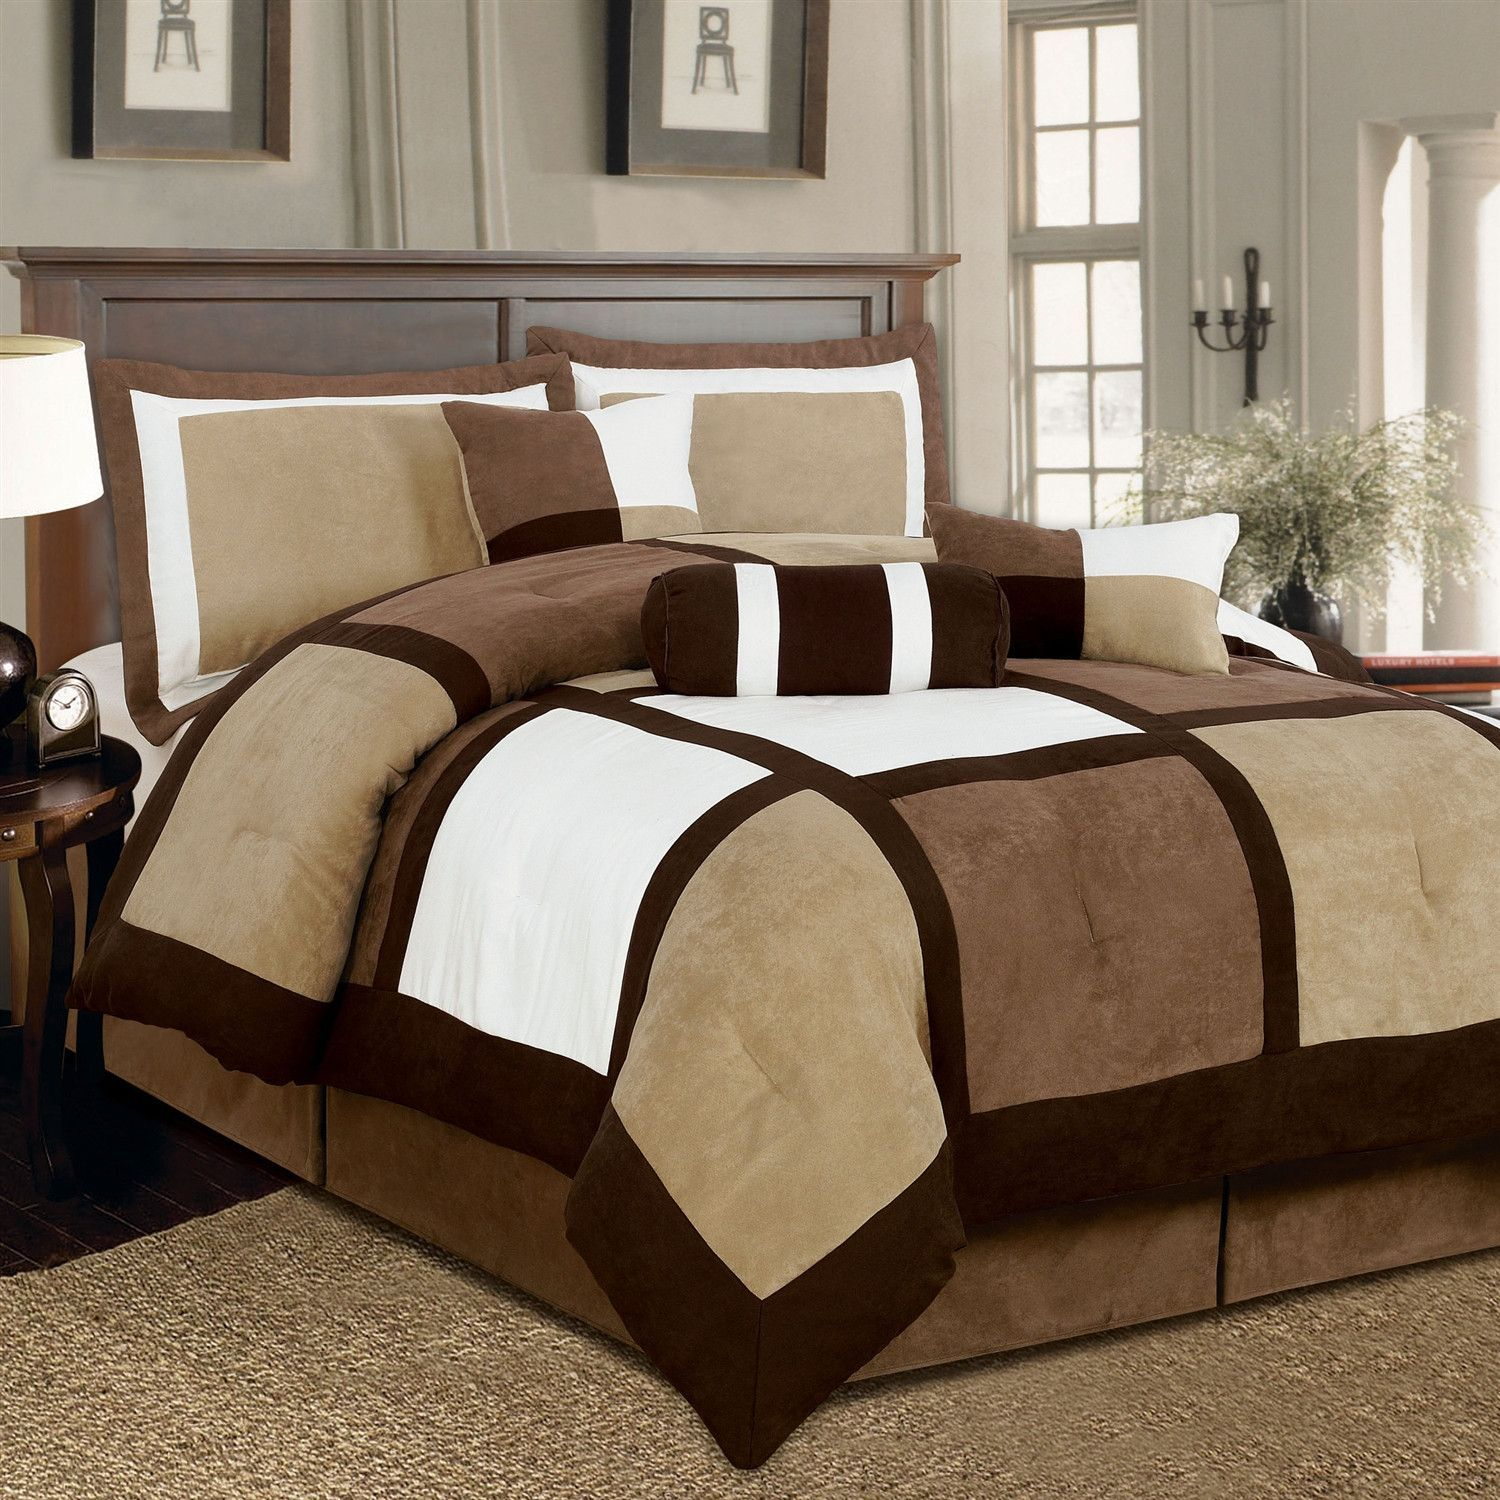 King Size 7 Piece Bed in a Bag Patchwork forter set in Brown